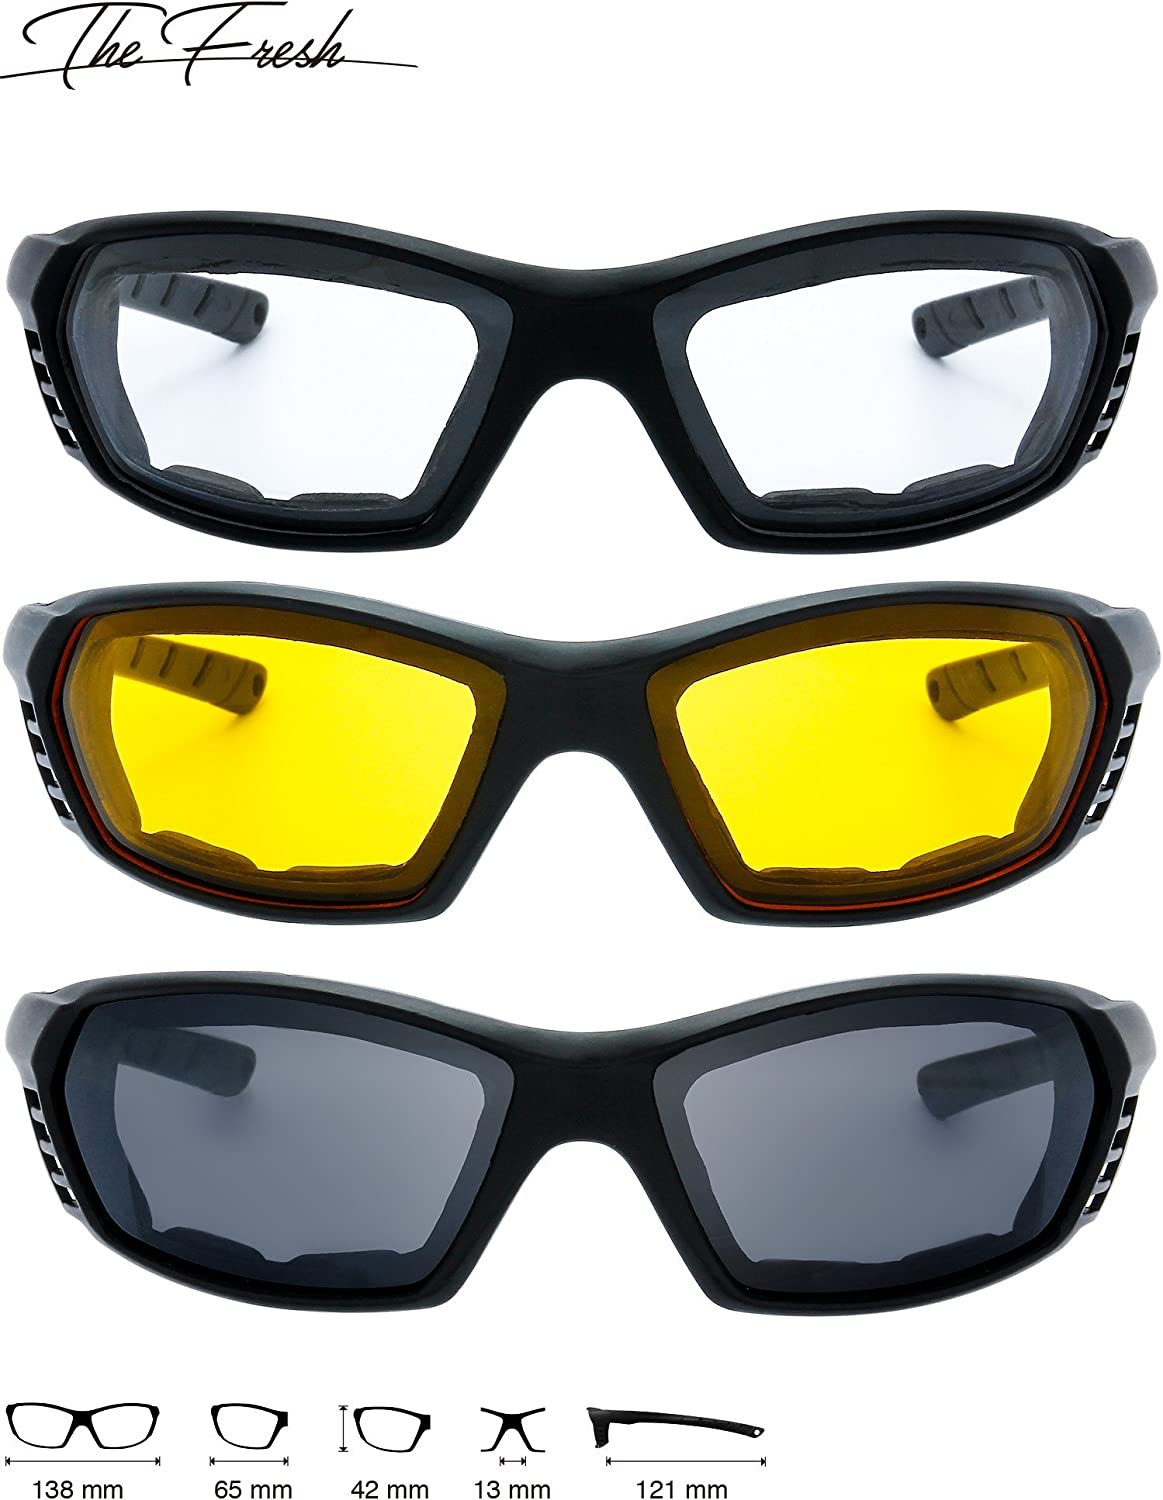 Motorcycle Riding Glasses Padded Frame Lens Block 100/% UVB for Outdoor Activity Sport